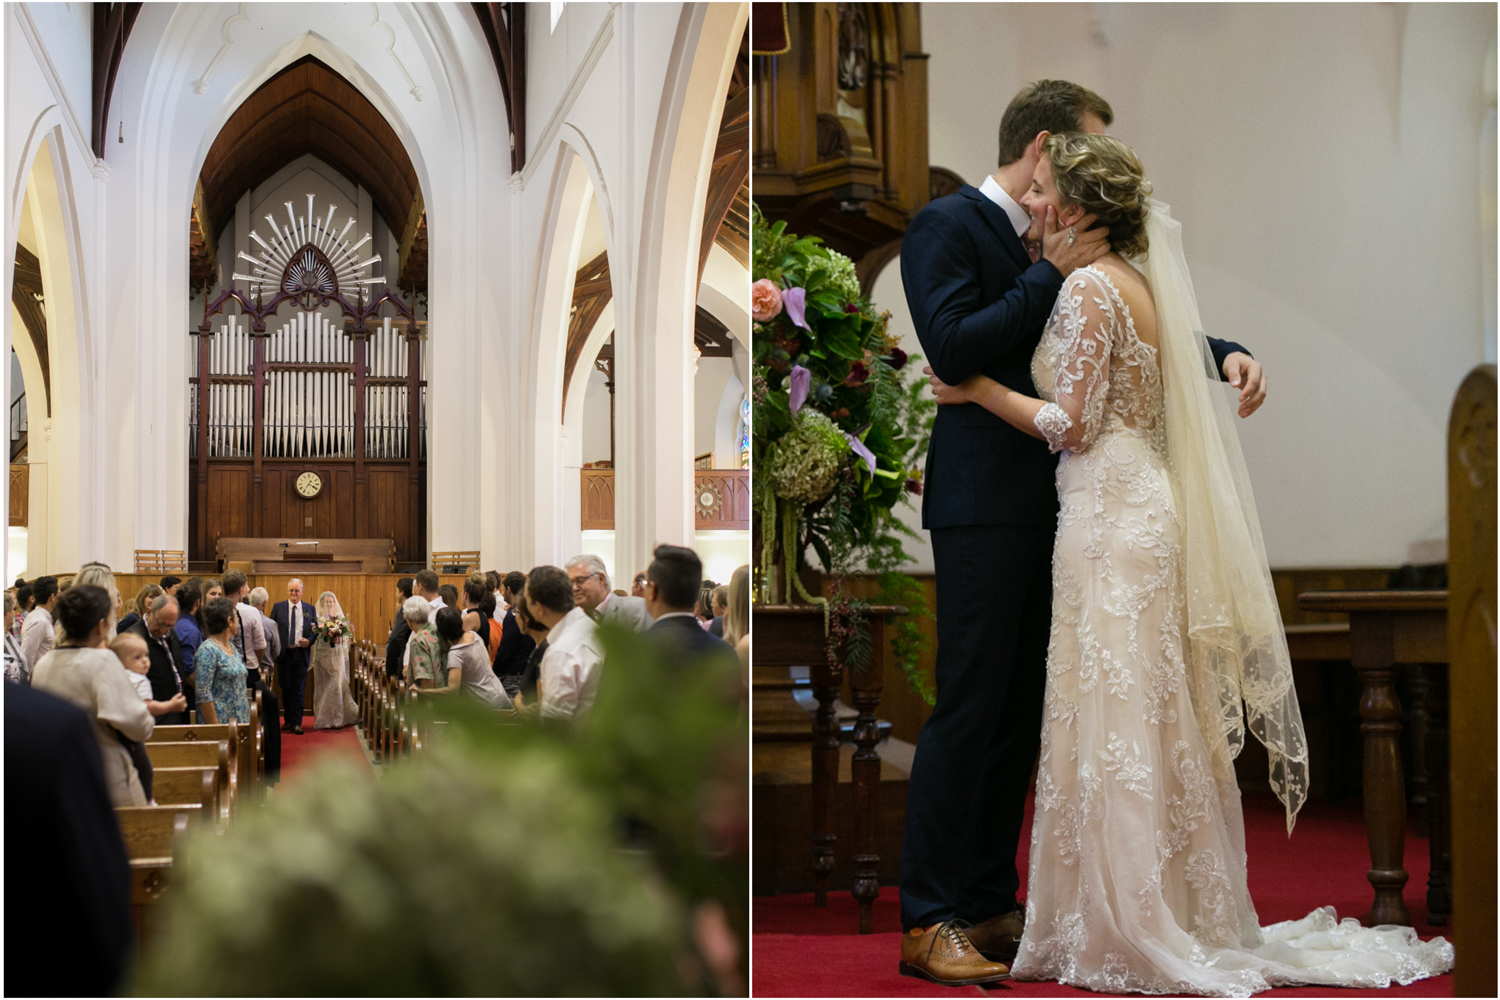 heisvisual-wedding-photographers-documentary-stellenbosch-south-africa001-10.jpg